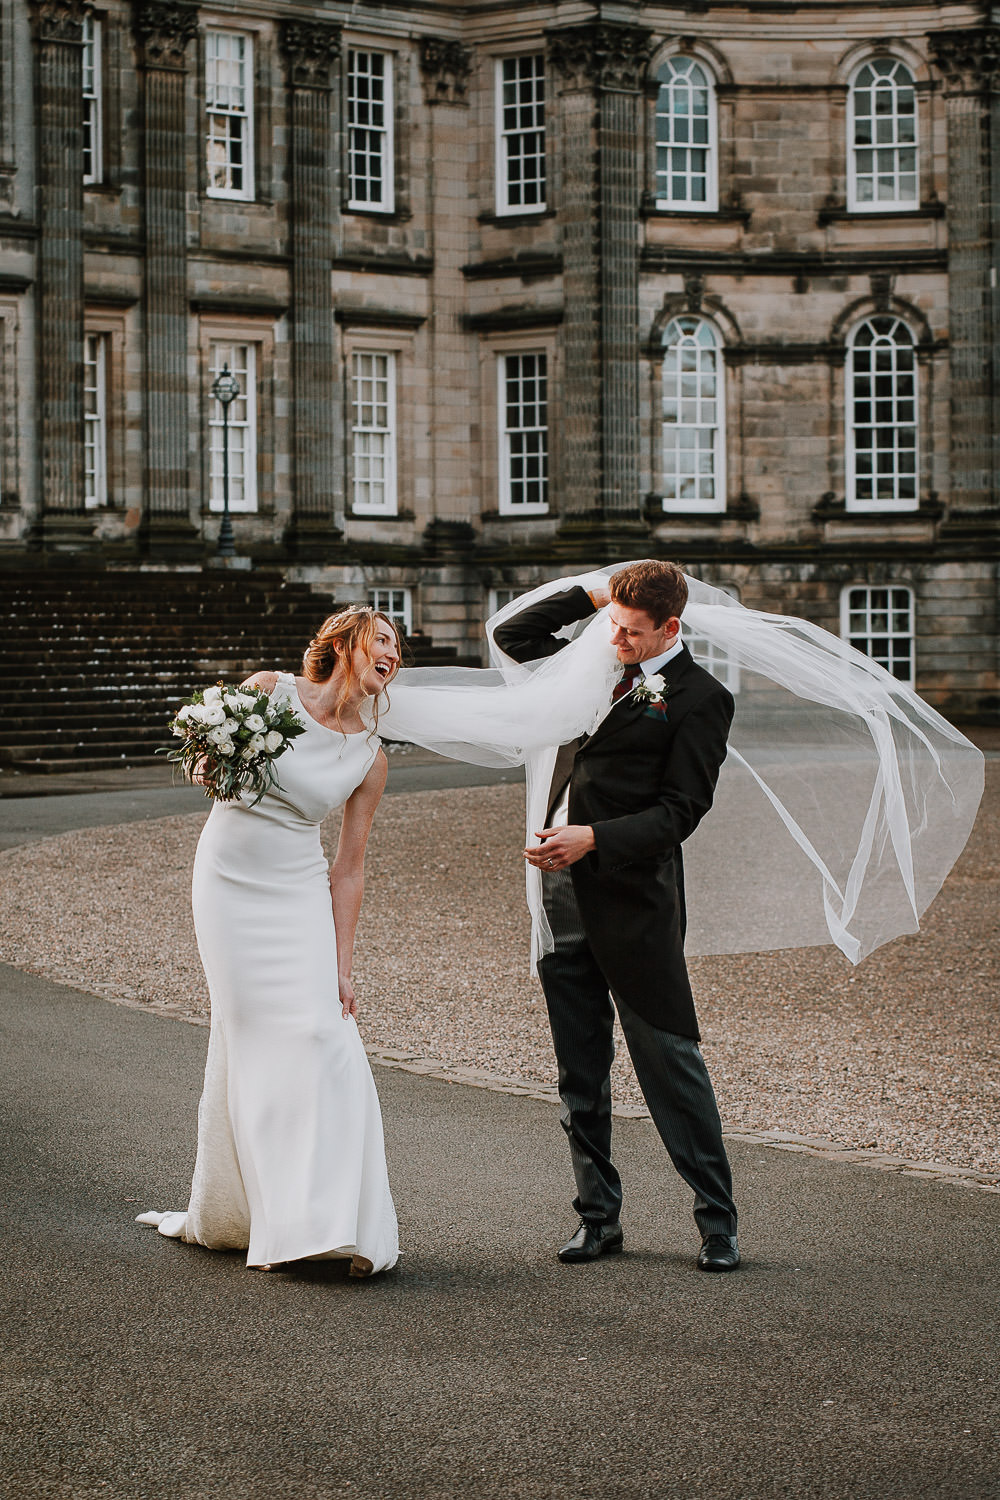 Groom caring brides veil over his shoulder at Hopetoun House Wedding